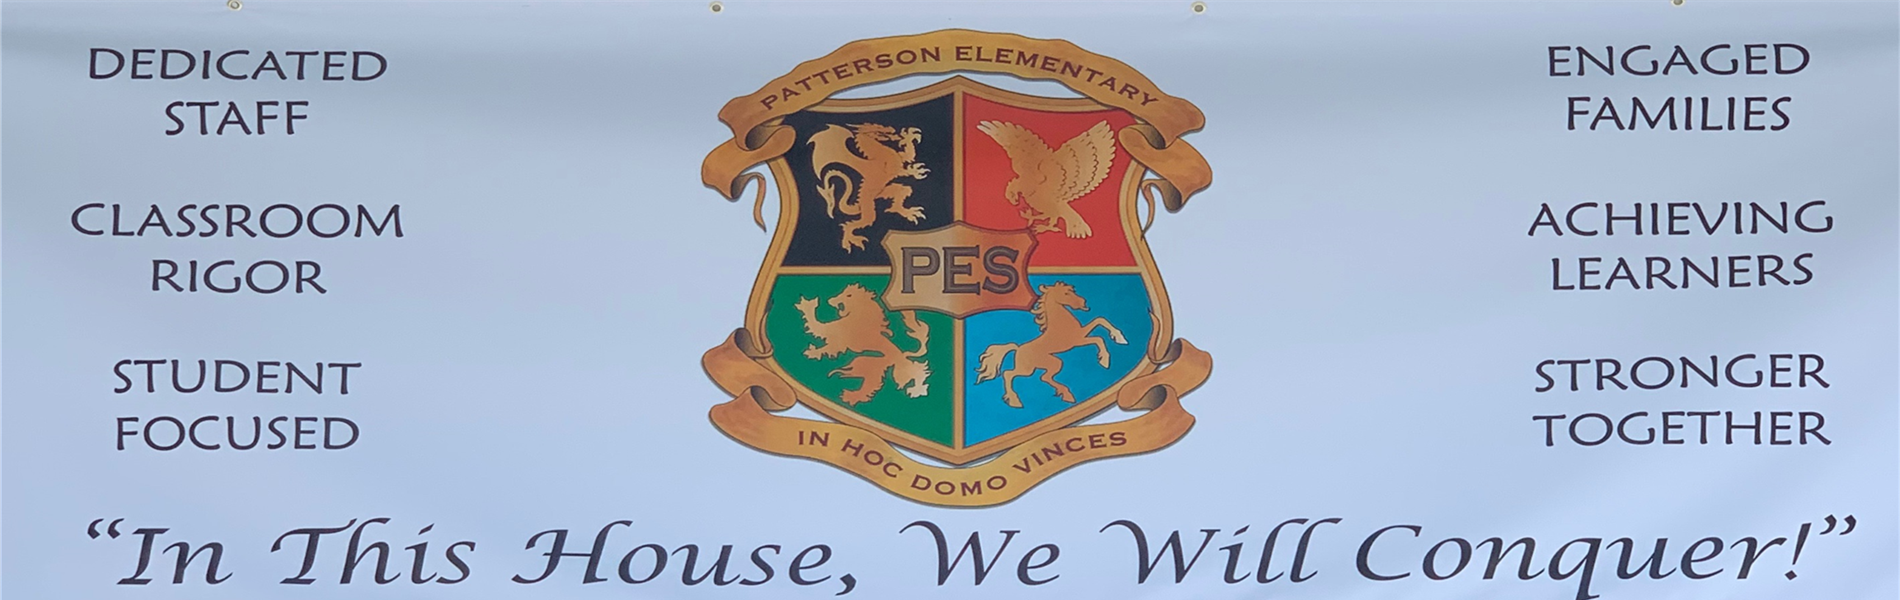 Patterson Elementary House Banner